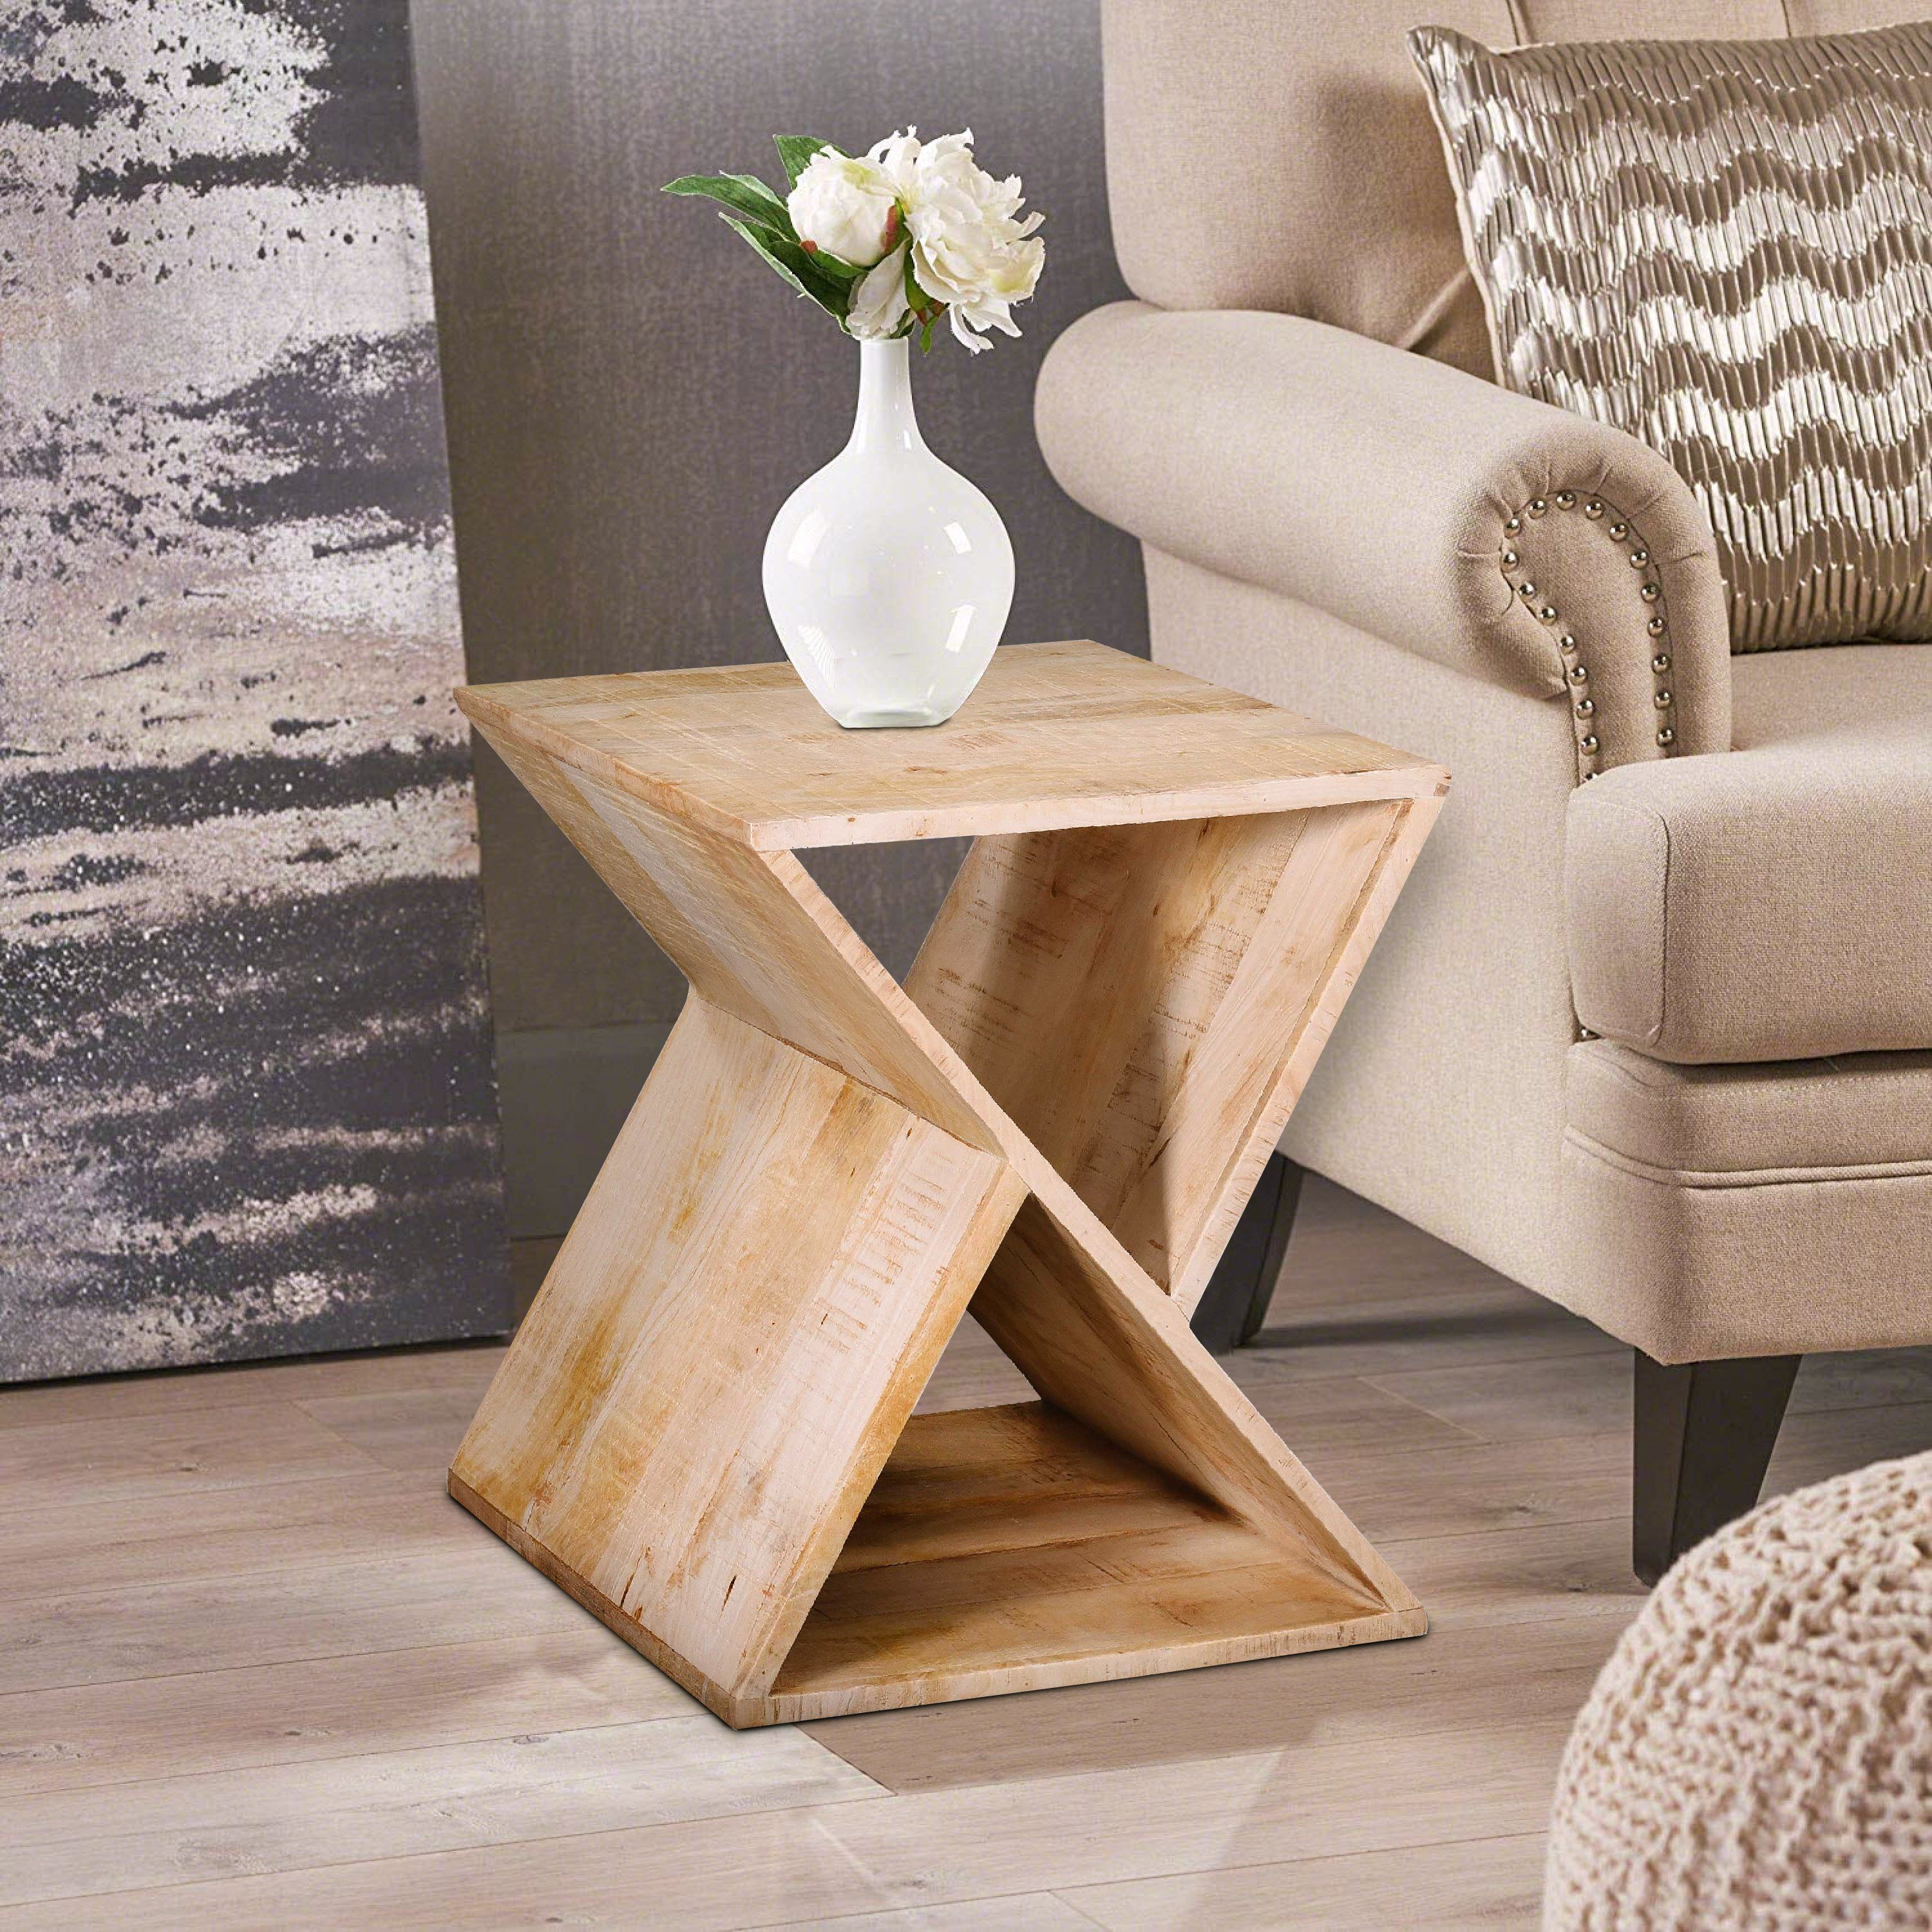 Handcrafted Mango Wood Z Shaped End Table With Open Bottom Shelf Brown By The Urban Port In 2021 Side Table Wood Home Interior Accessories Wood End Tables